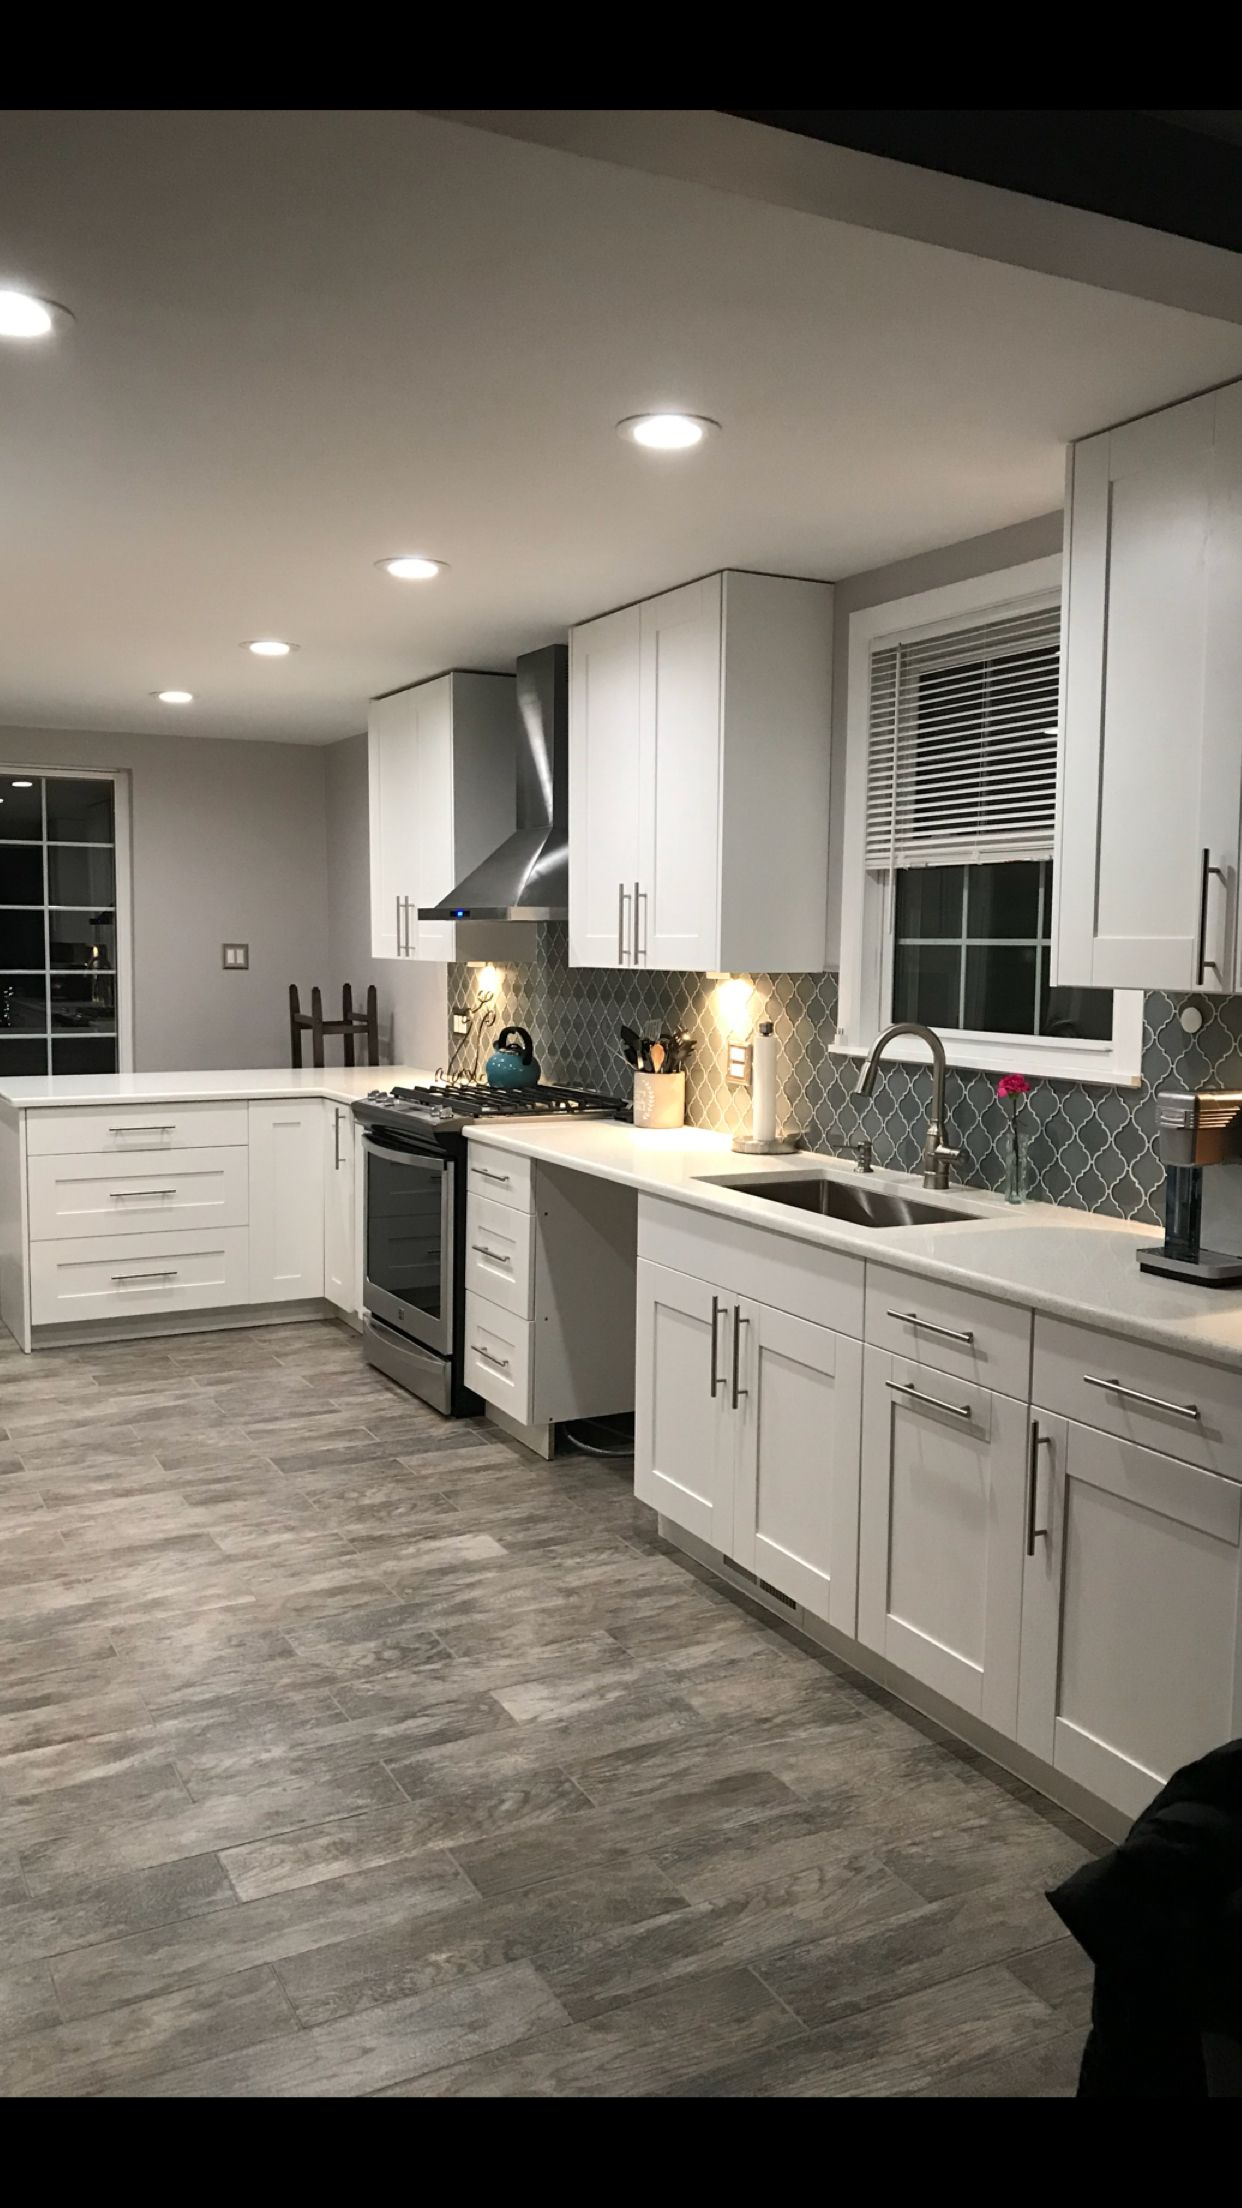 This Exact Color Scheme White Cabinets Trim Light